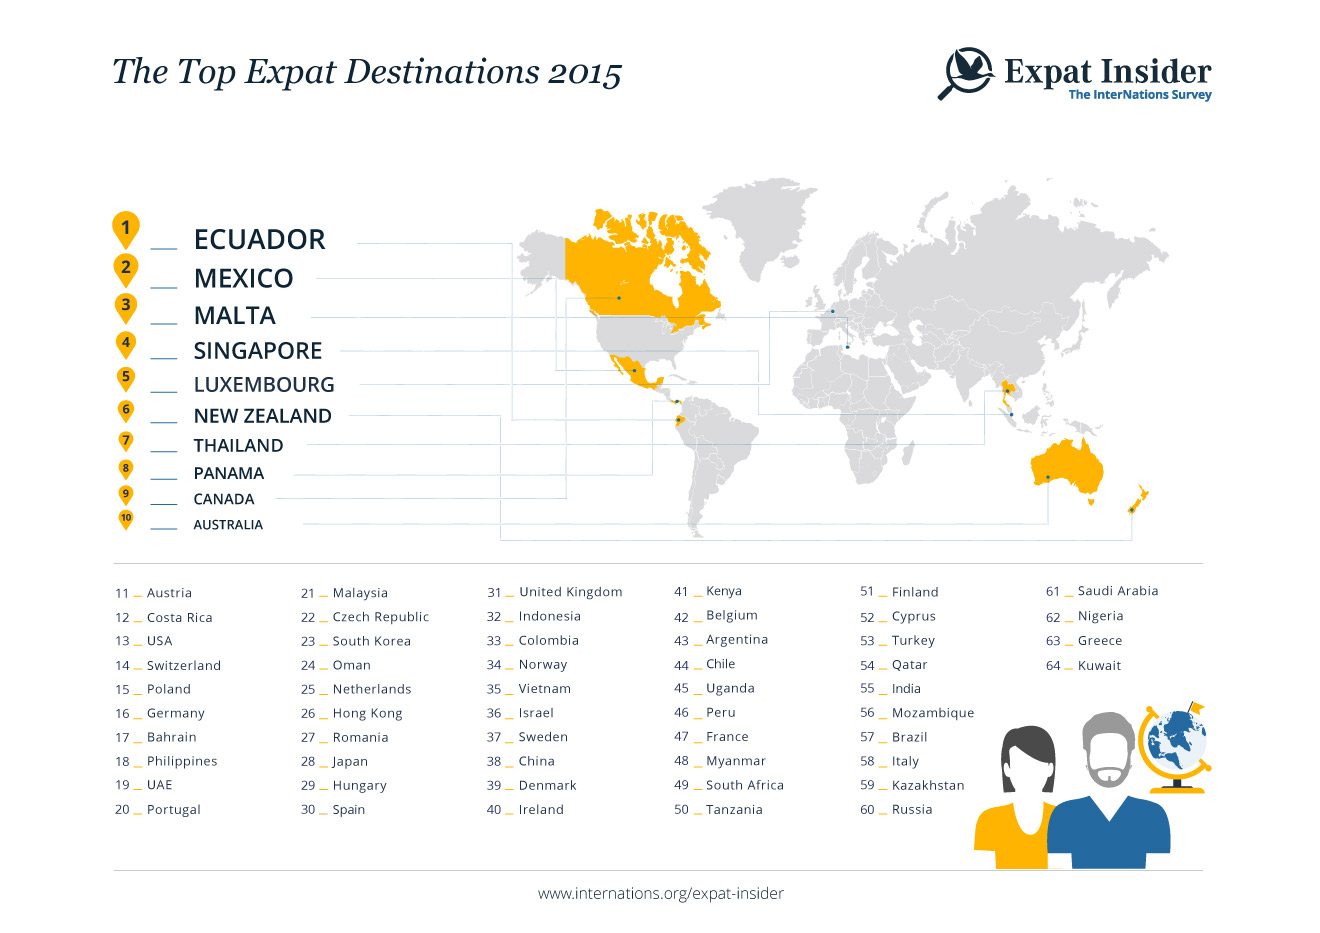 Top Expat Destinations 2015 - infographic